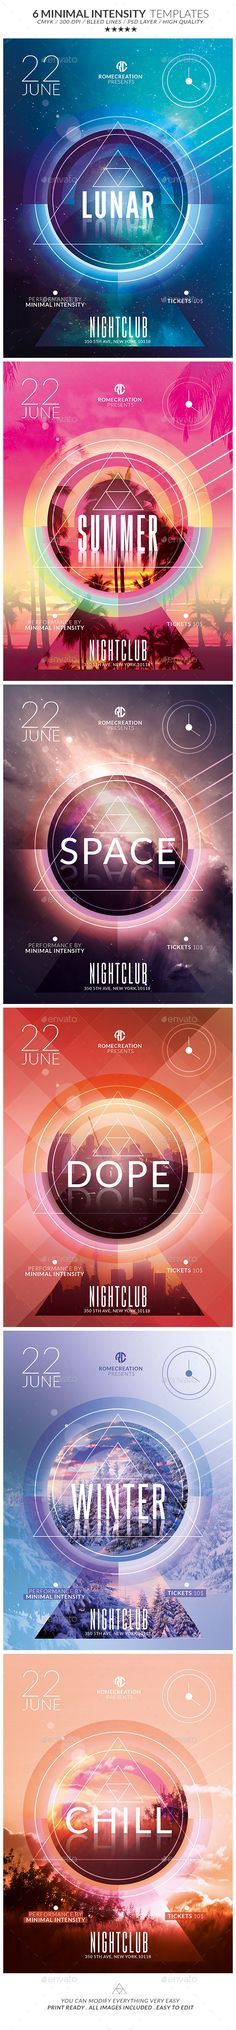 x6 Minimal Intensity / Flyer Psd Templates Pack / Print Ready !!!  - Available on #envatomarket #graphicriver #template #minimal #flyer #poster #romecreation